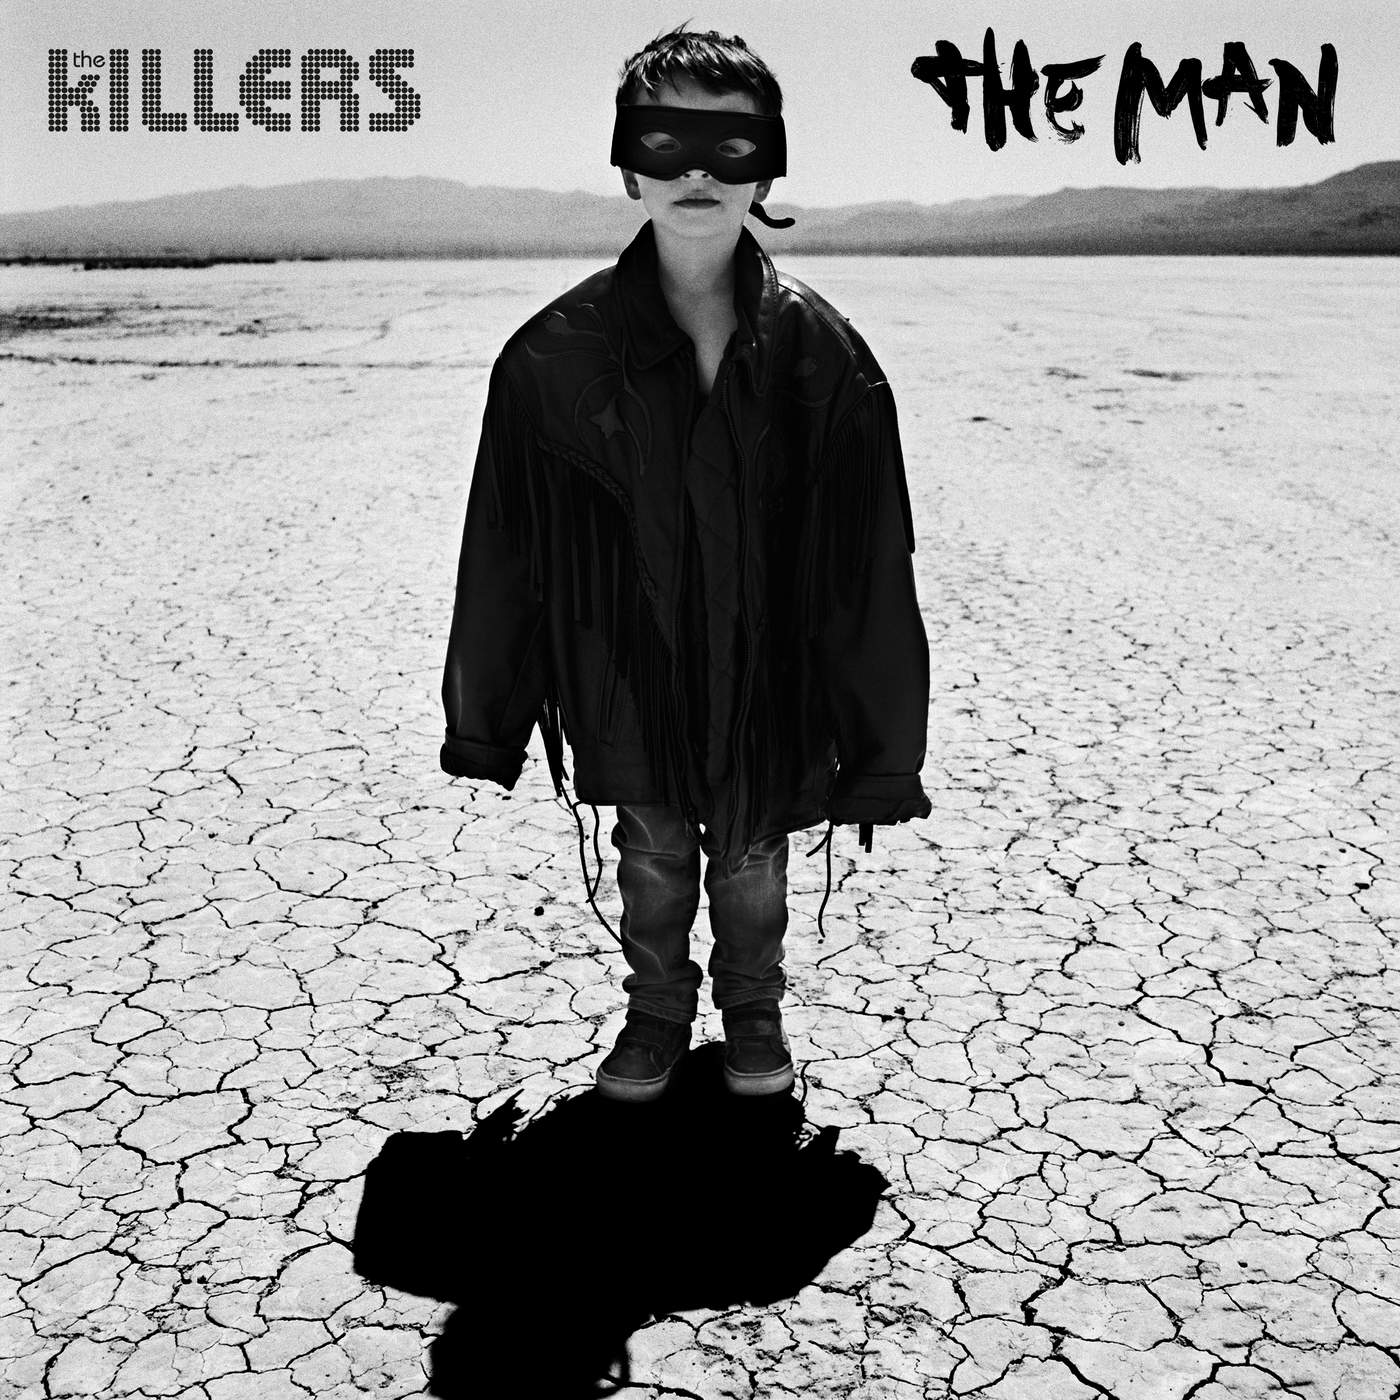 The Killers - The Man - Single Cover